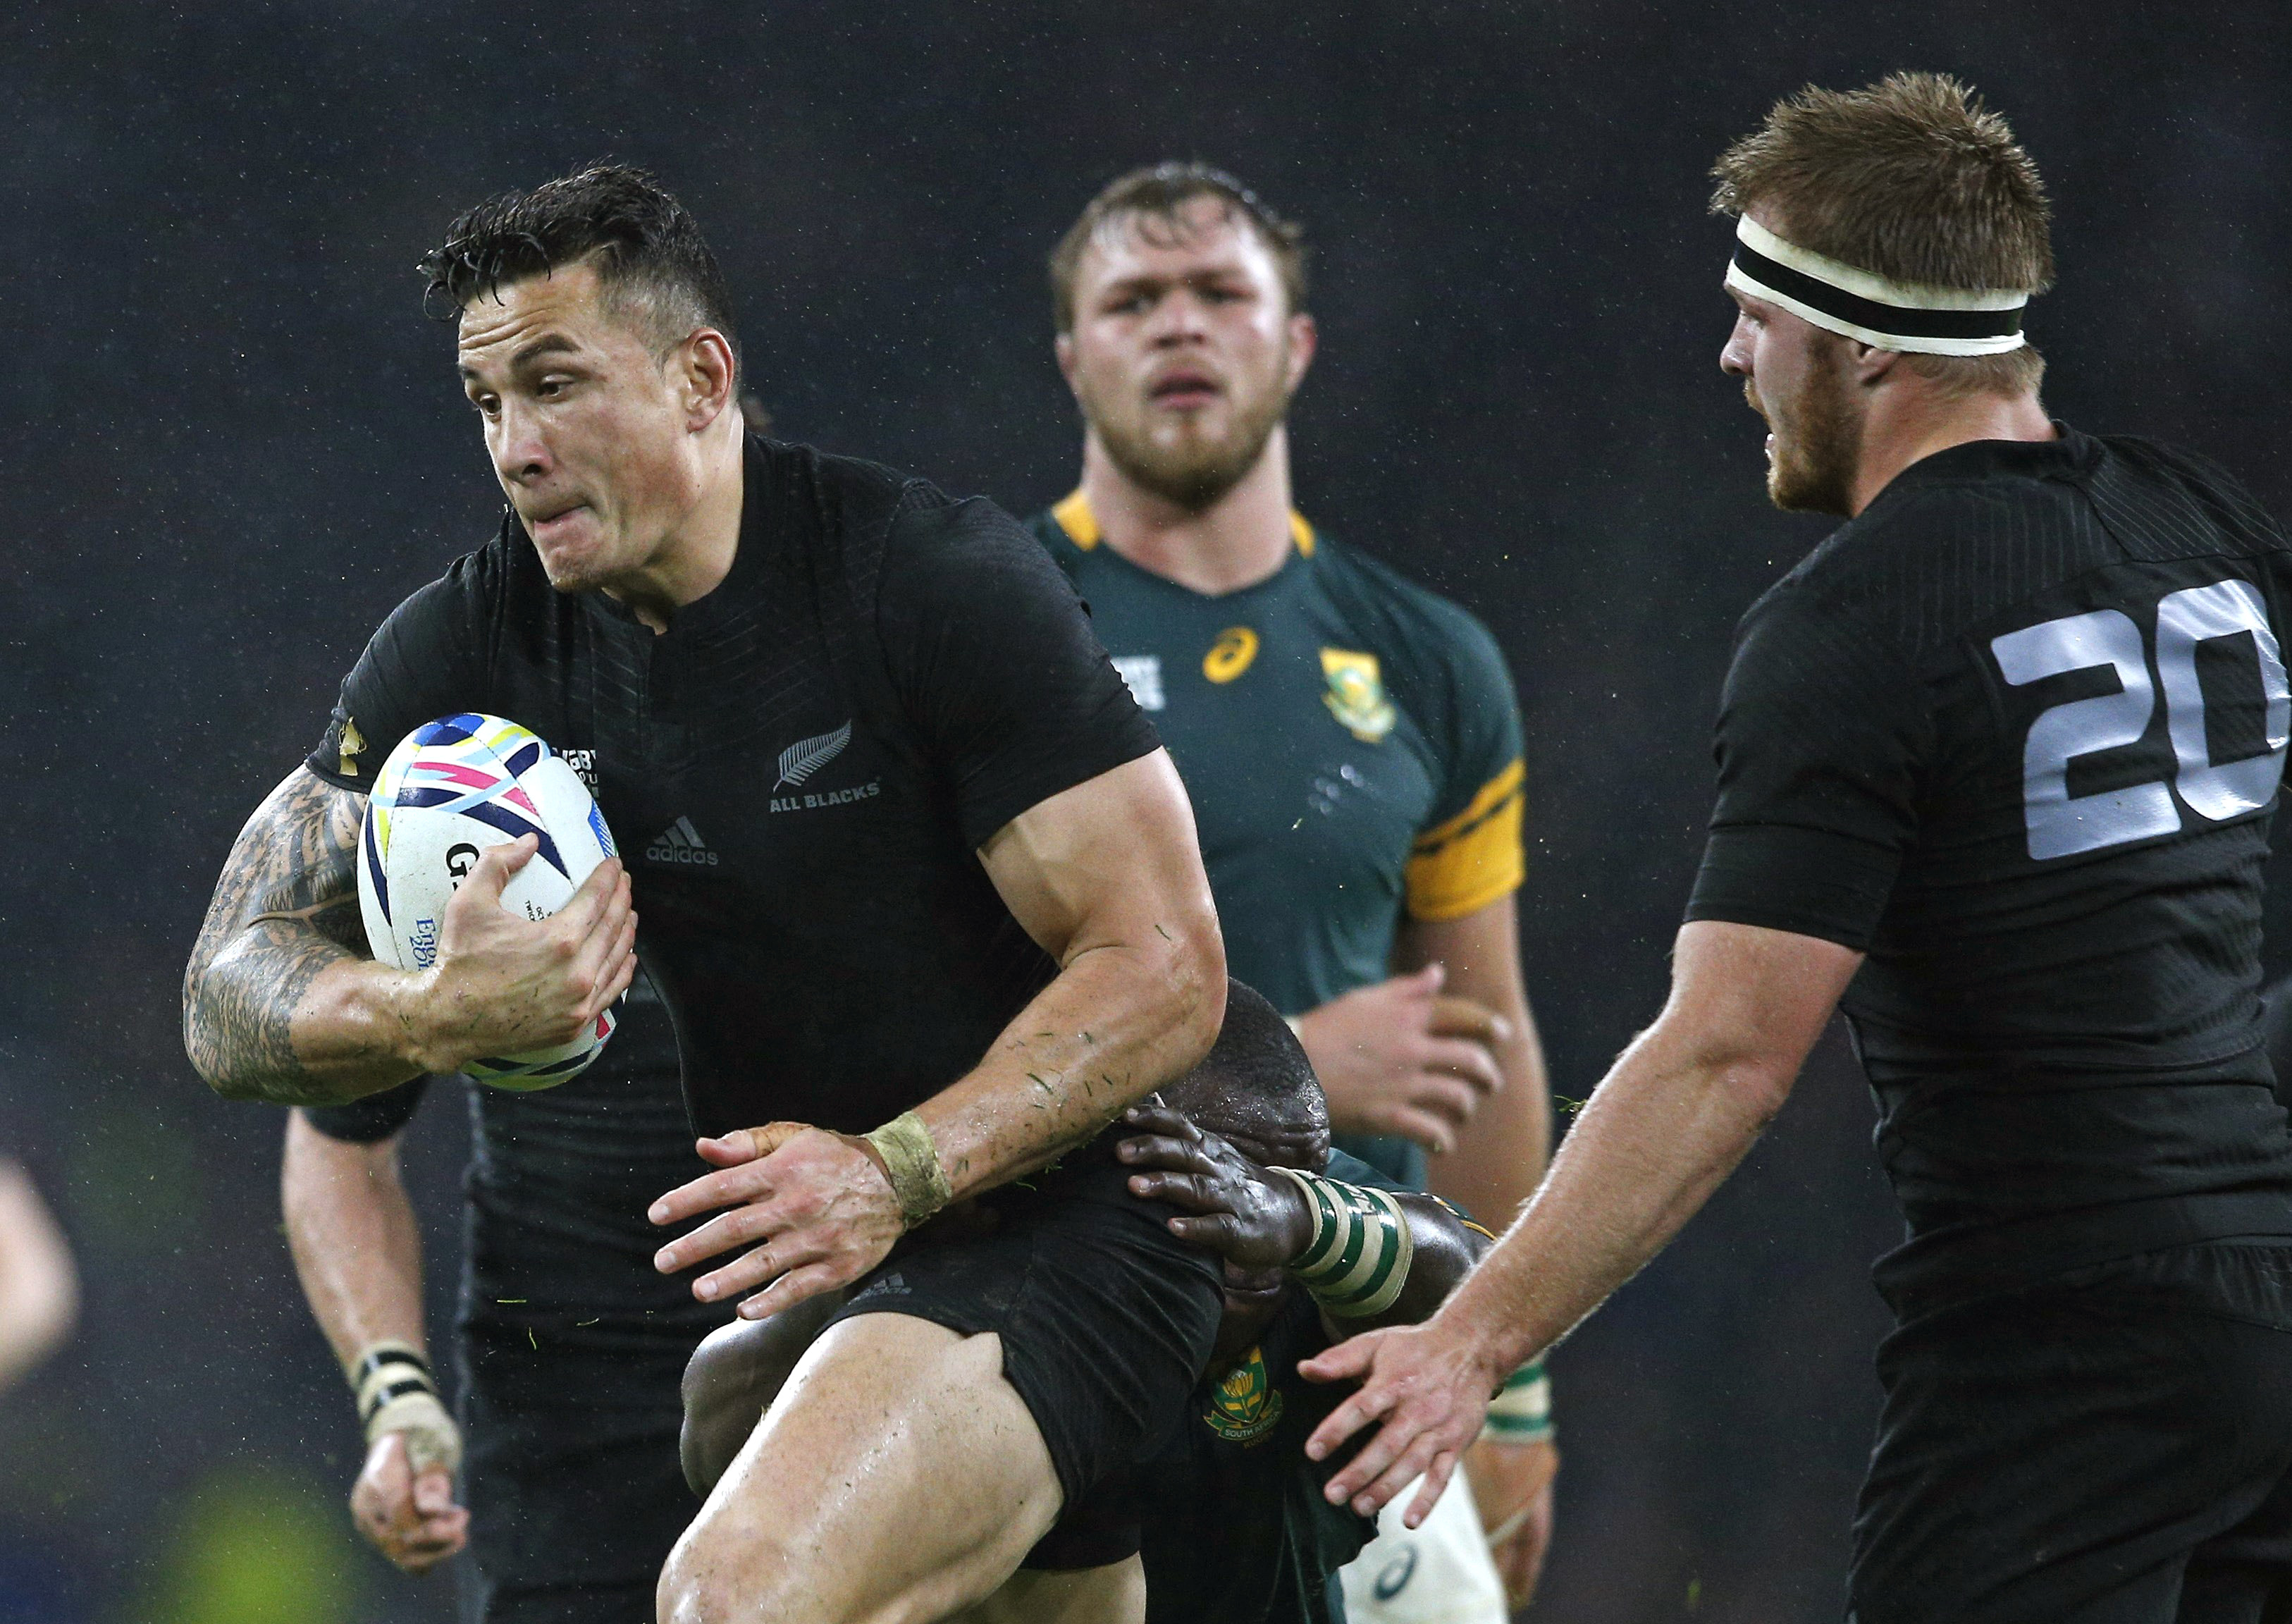 FILE - In this Oct. 24, 2015 file photo, New Zealand's Sonny Bill Williams runs with the ball during the Rugby World Cup semifinal match between New Zealand and South Africa at Twickenham Stadium in London. Williams passes for a superstar in this part of